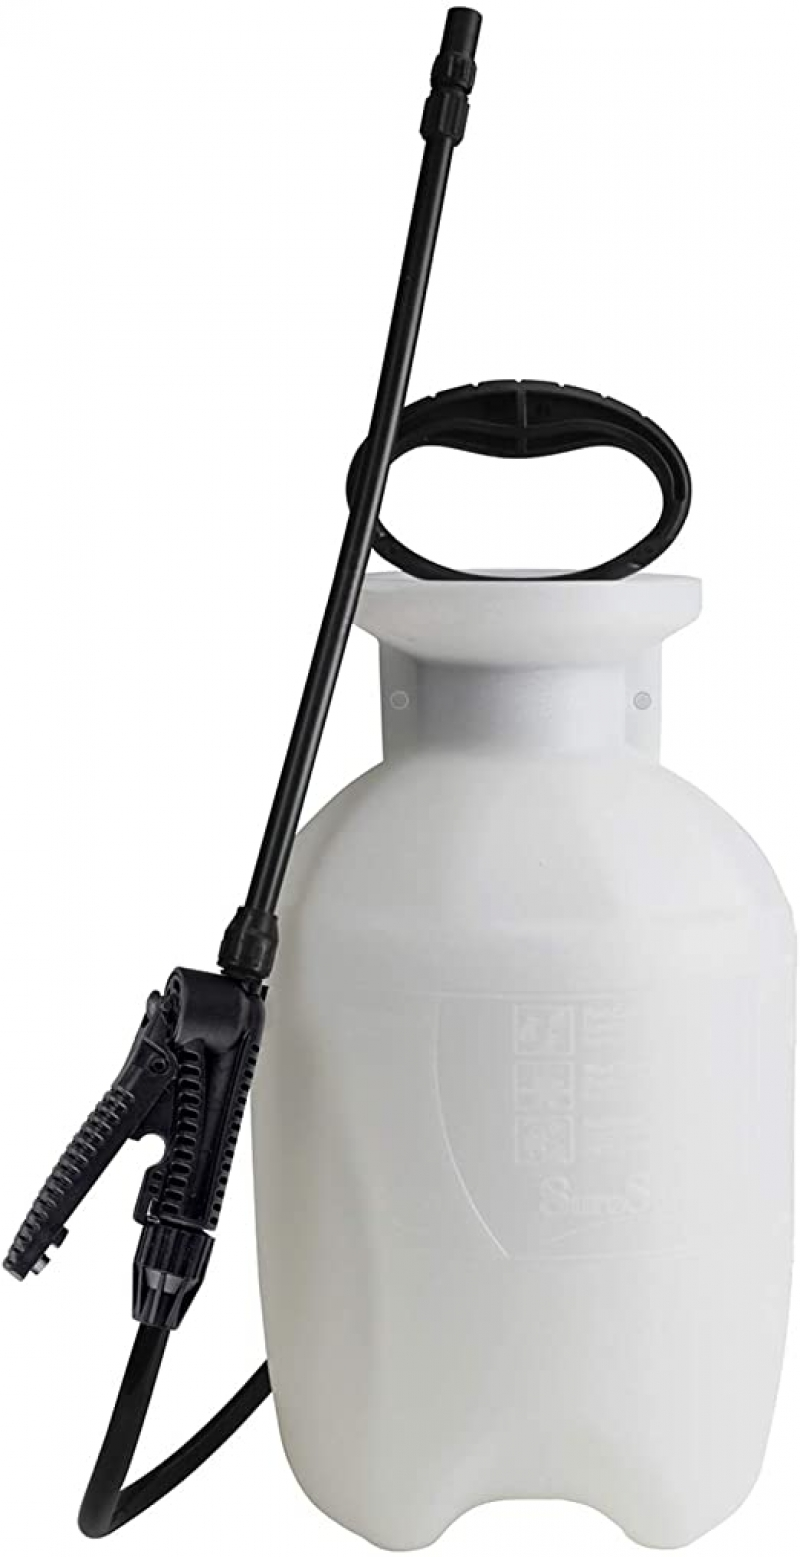 ihocon: Chapin 20000 Garden Sprayer 1 Gallon 園藝噴灑壺